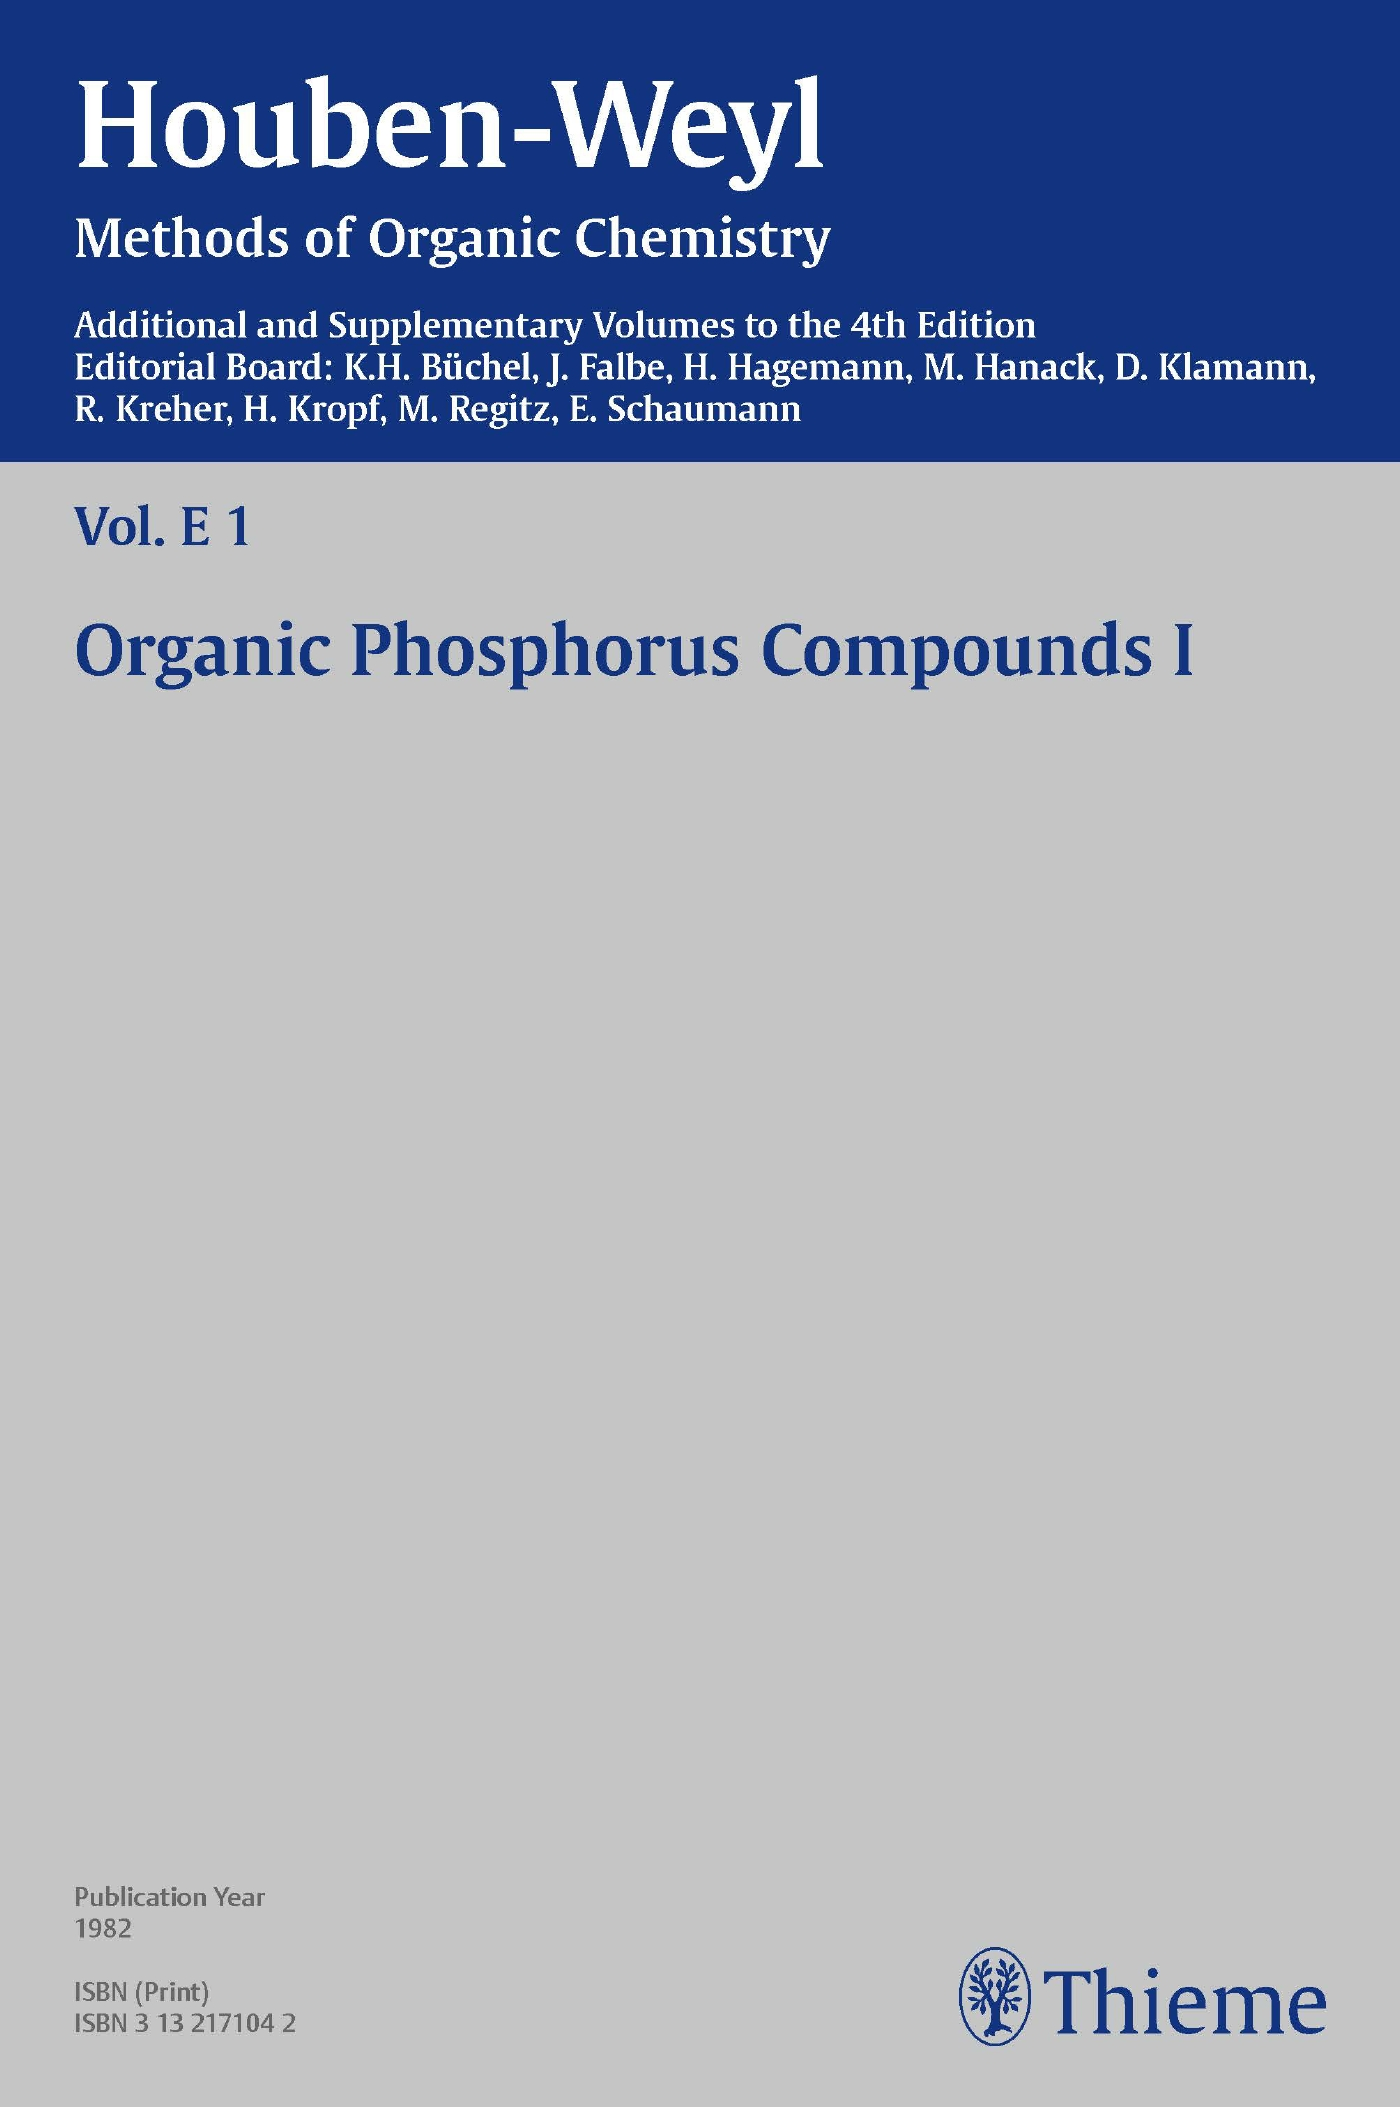 Houben-Weyl Methods of Organic Chemistry Vol. E 1, 4th Edition Supplement